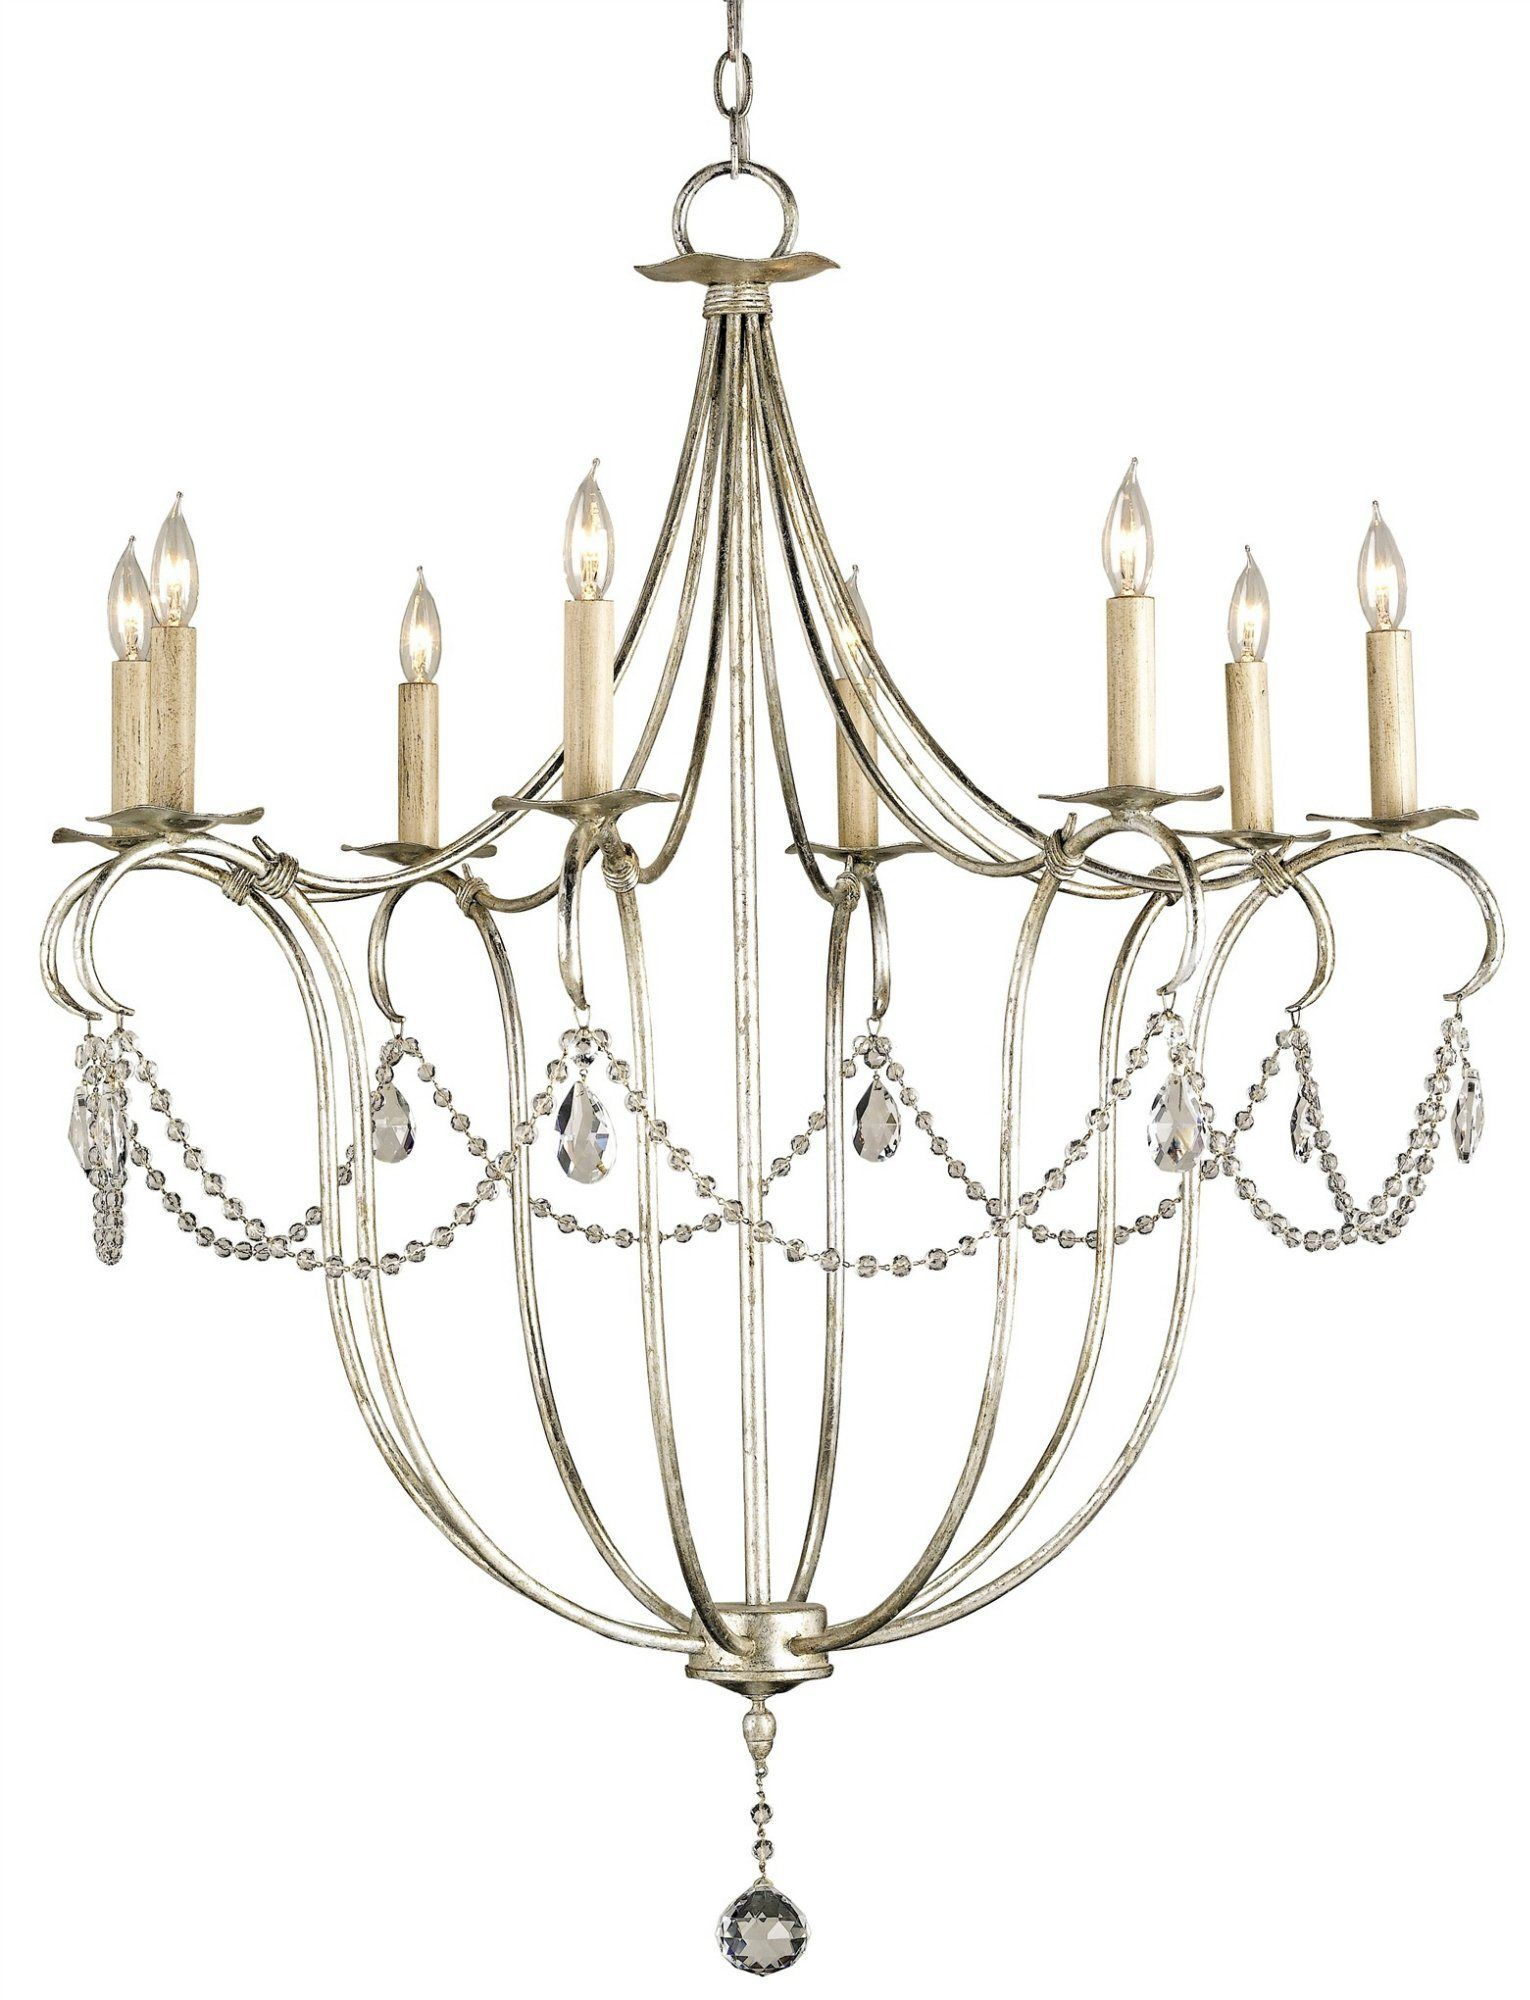 Currey And Company Crystal Lights Chandelier 9891 Crystal Lighting Chandelier Lighting Chandelier Design